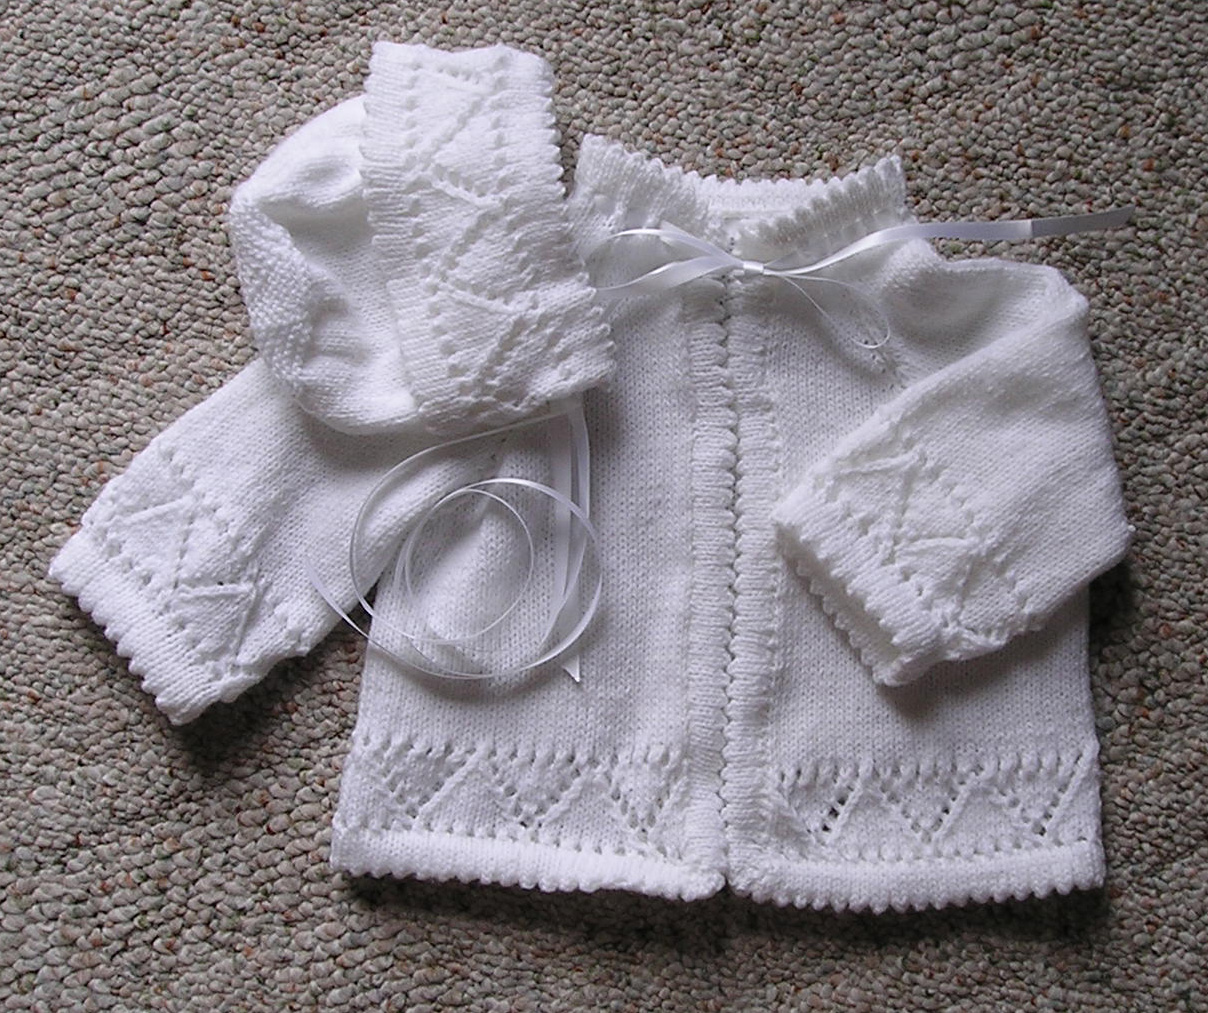 Knit Leaf Pattern Baby Sweater : Leaf And Lace Baby Sweater Pattern - Long Sweater Jacket